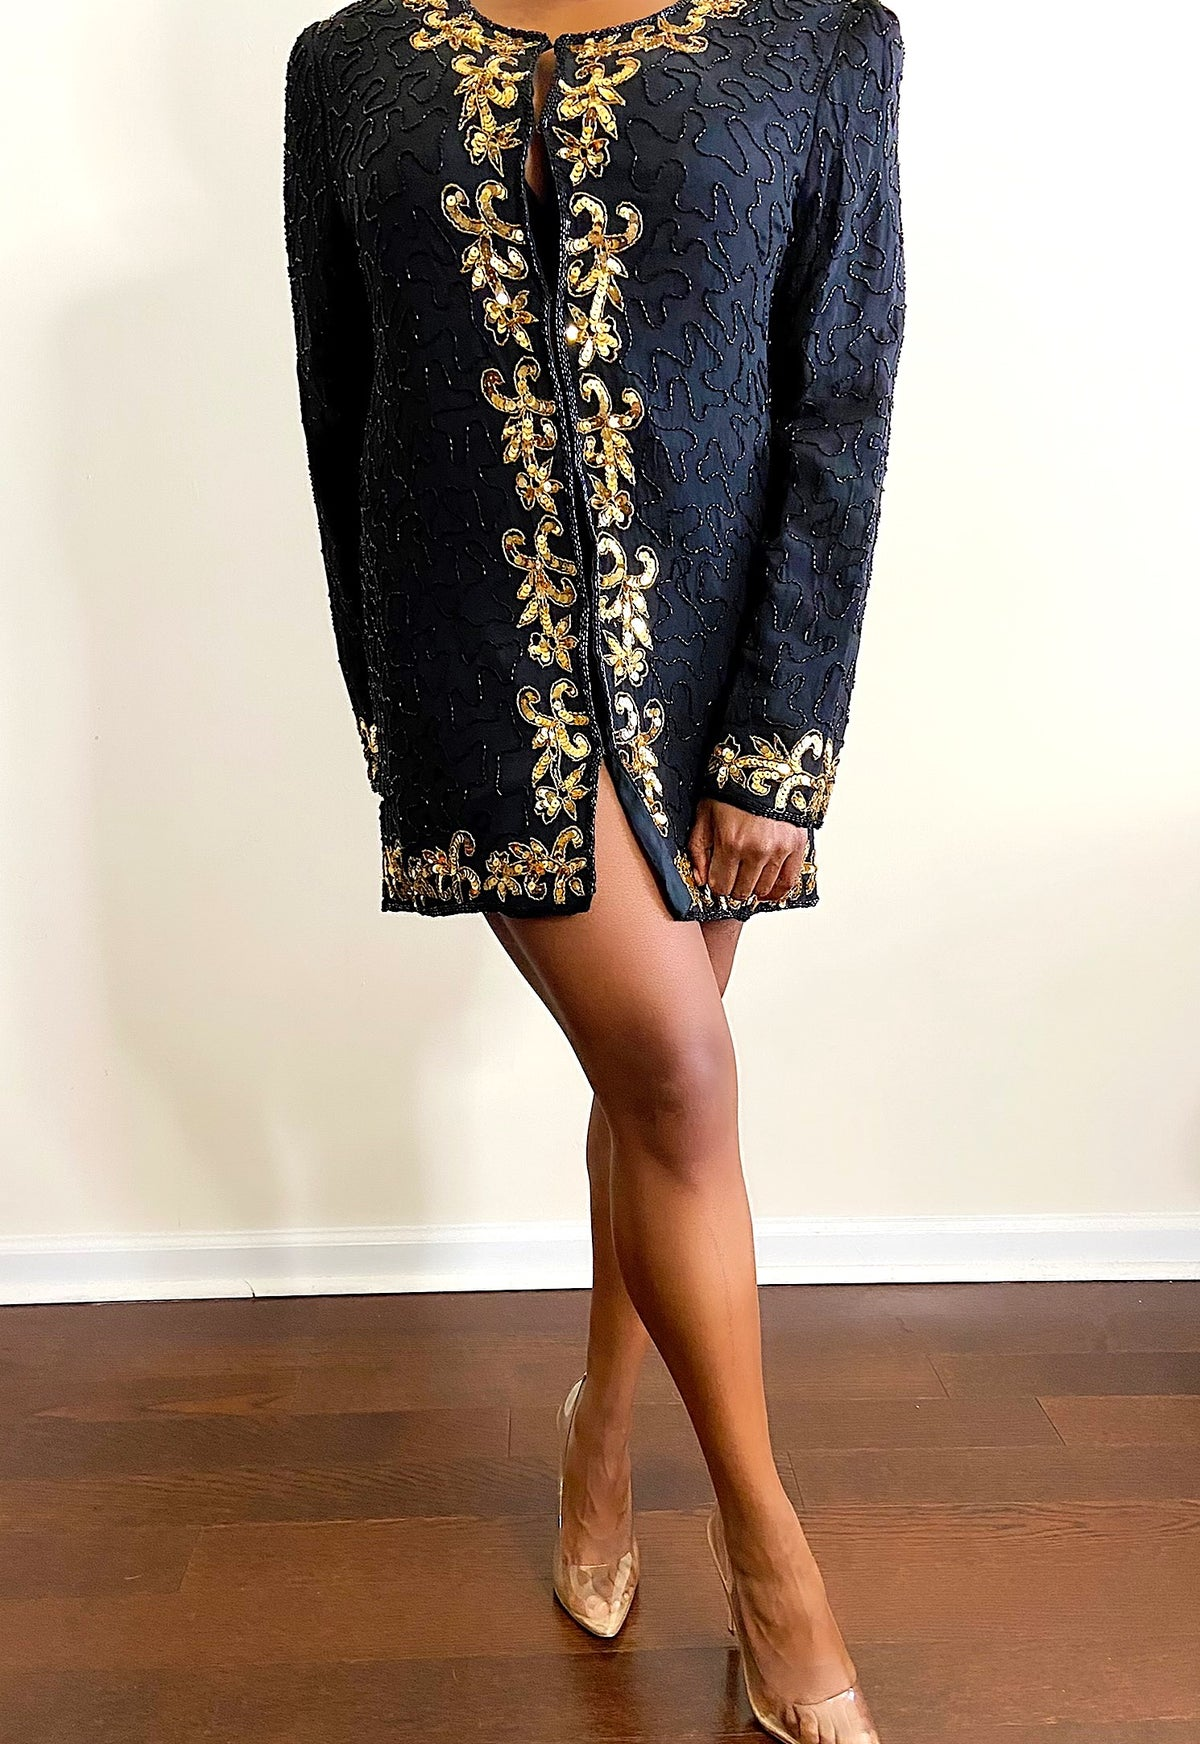 Image of Vintage Beaded Mini-Dress/Blazer - M/L